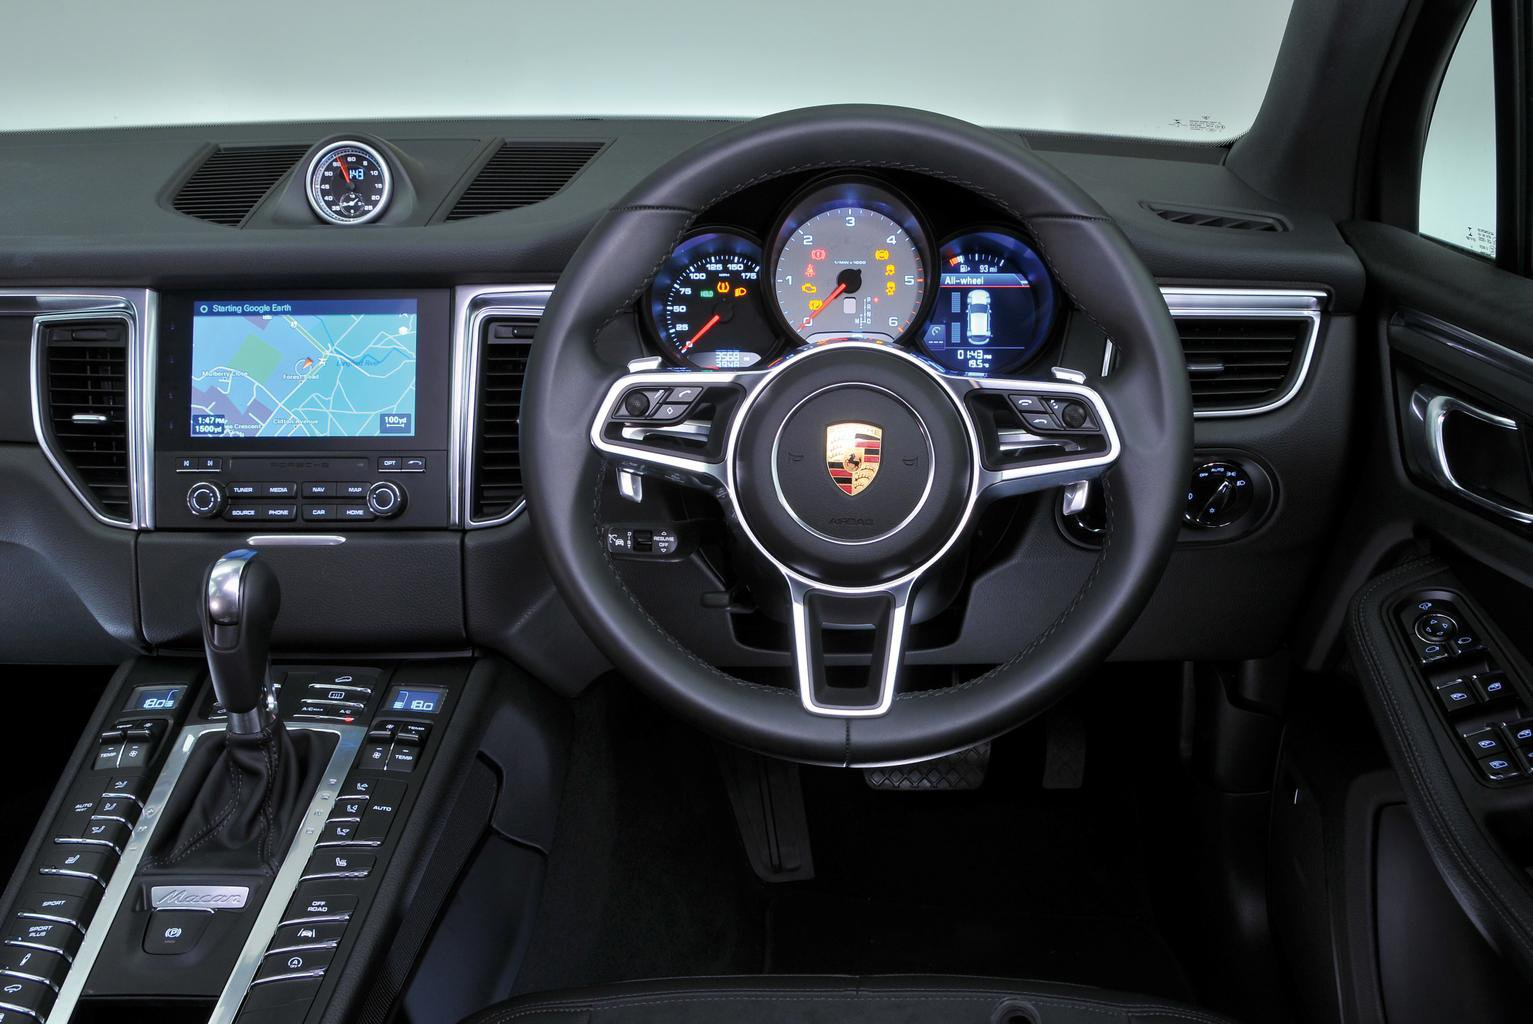 7 reasons to buy a Porsche Macan